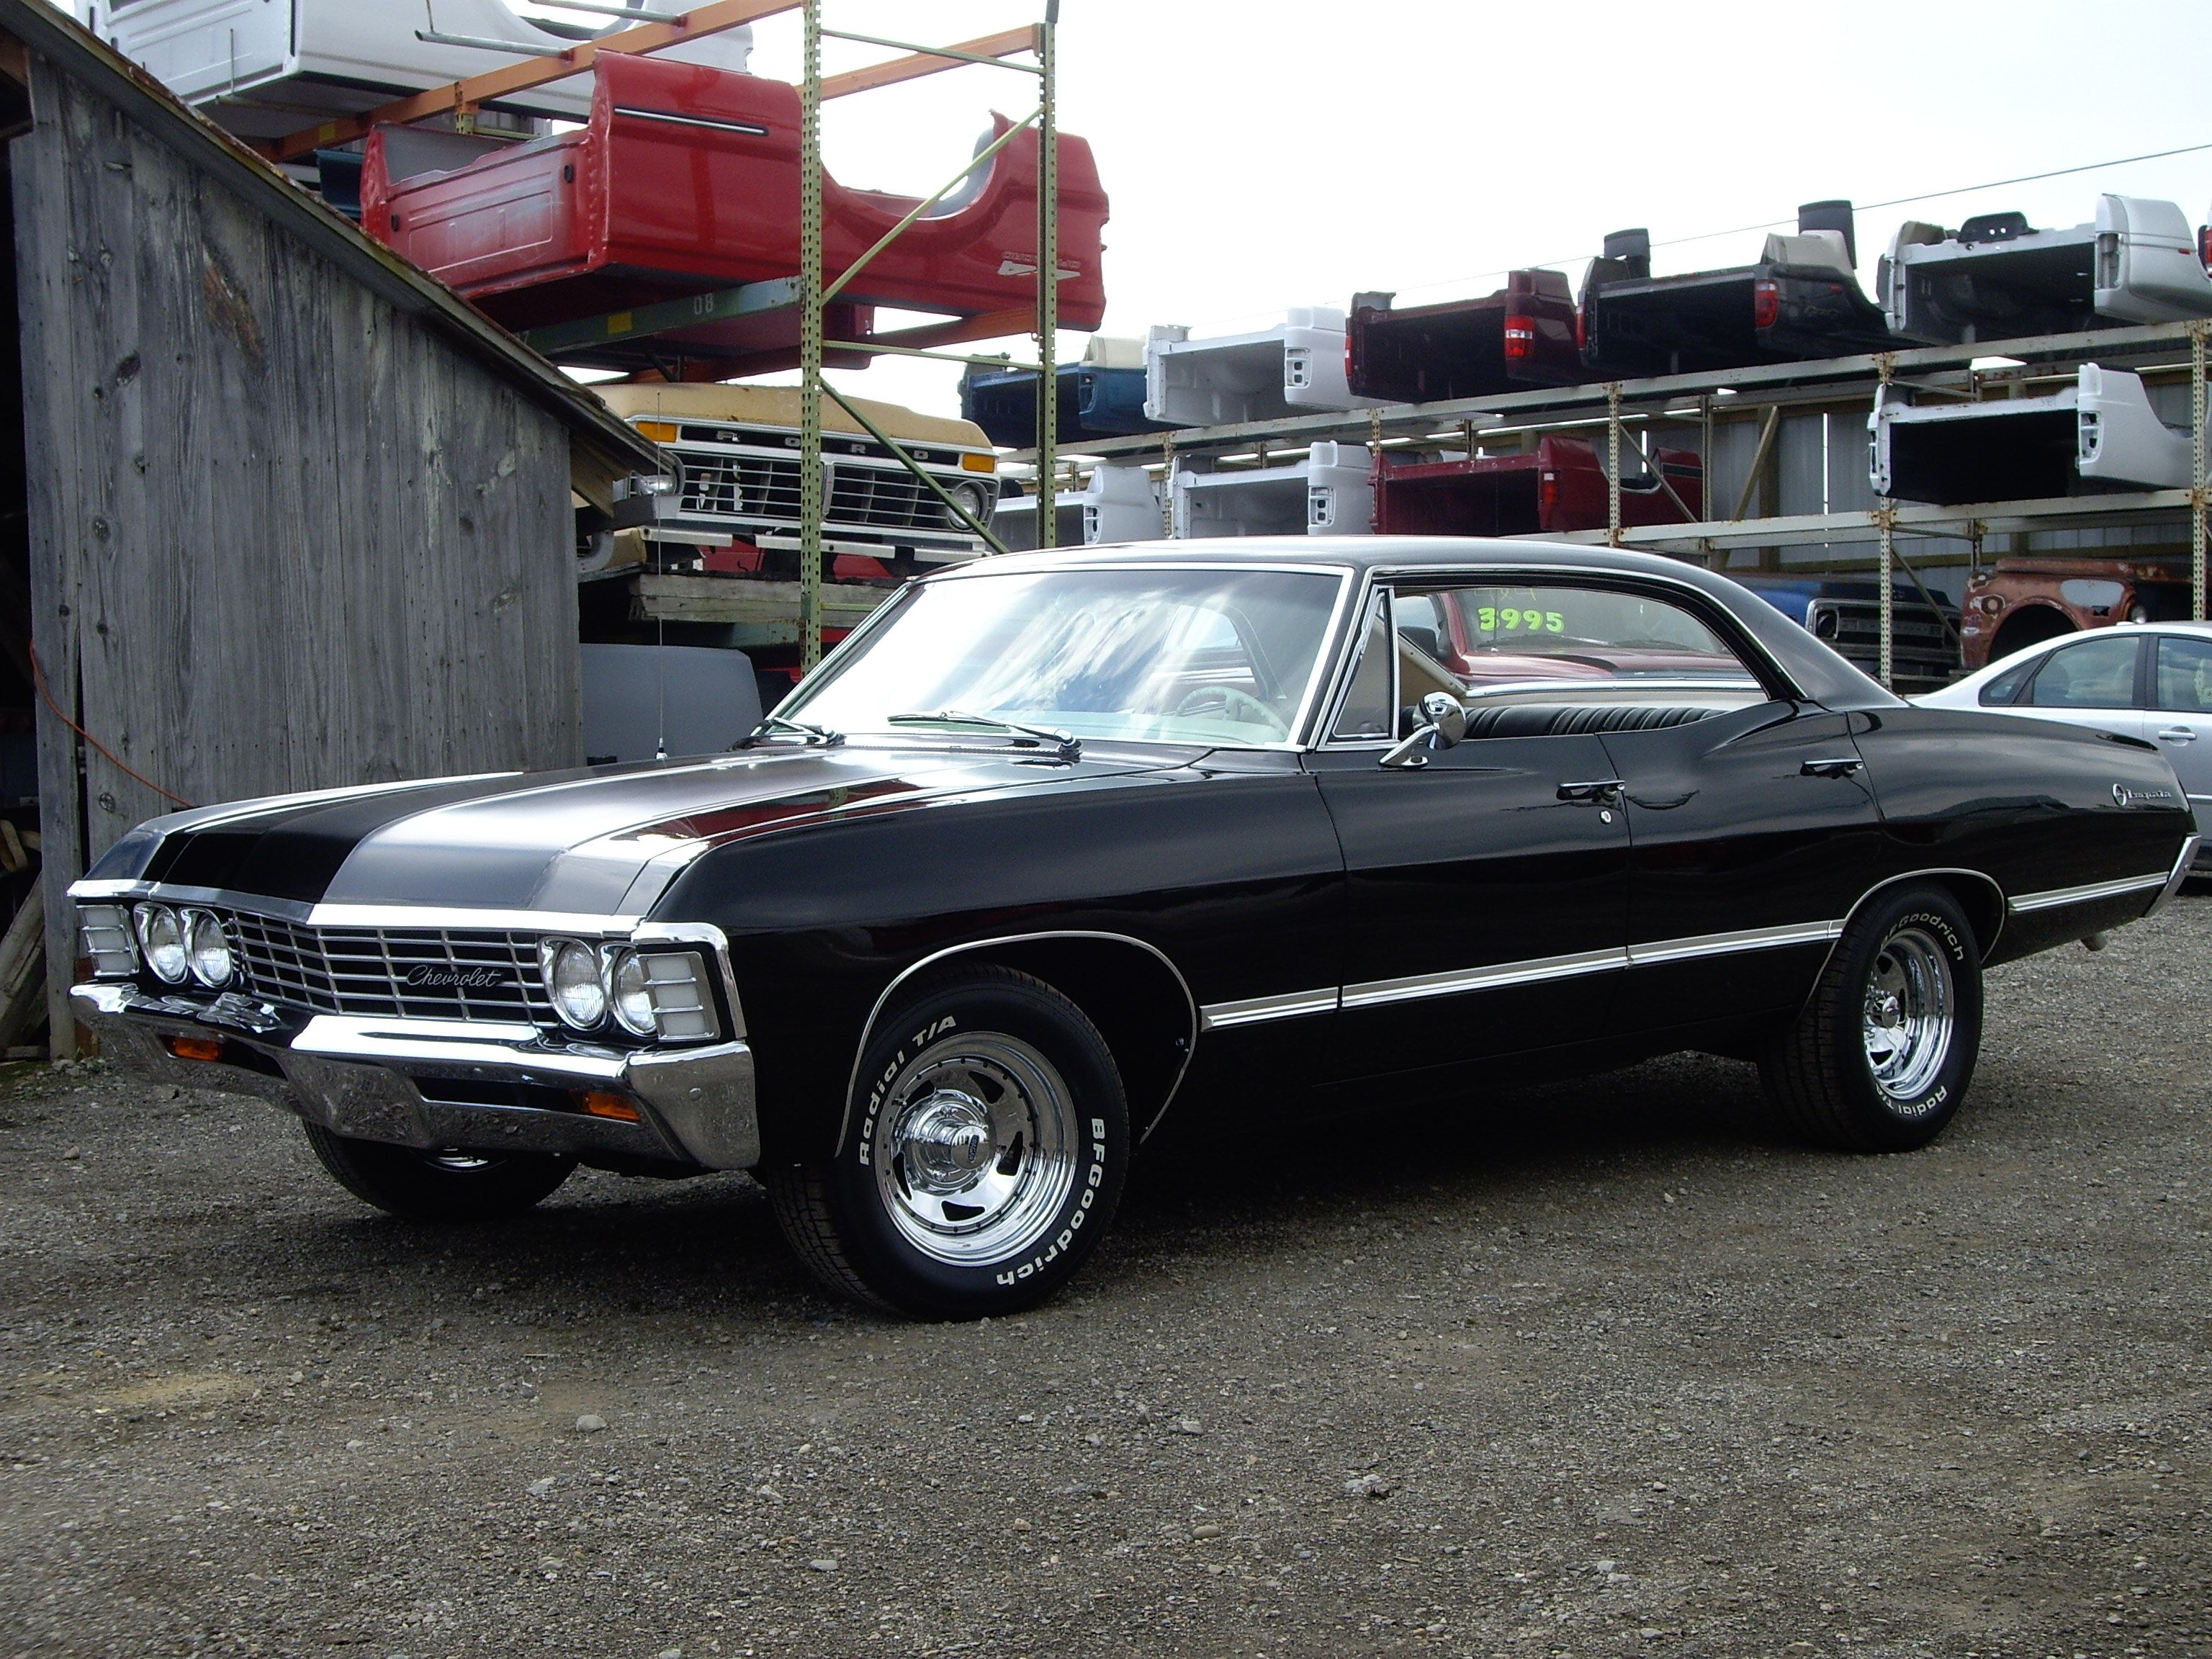 Iconic Tv Movie Cars Chevrolet Impala 1967 Chevy Impala 1967 Chevy Impala